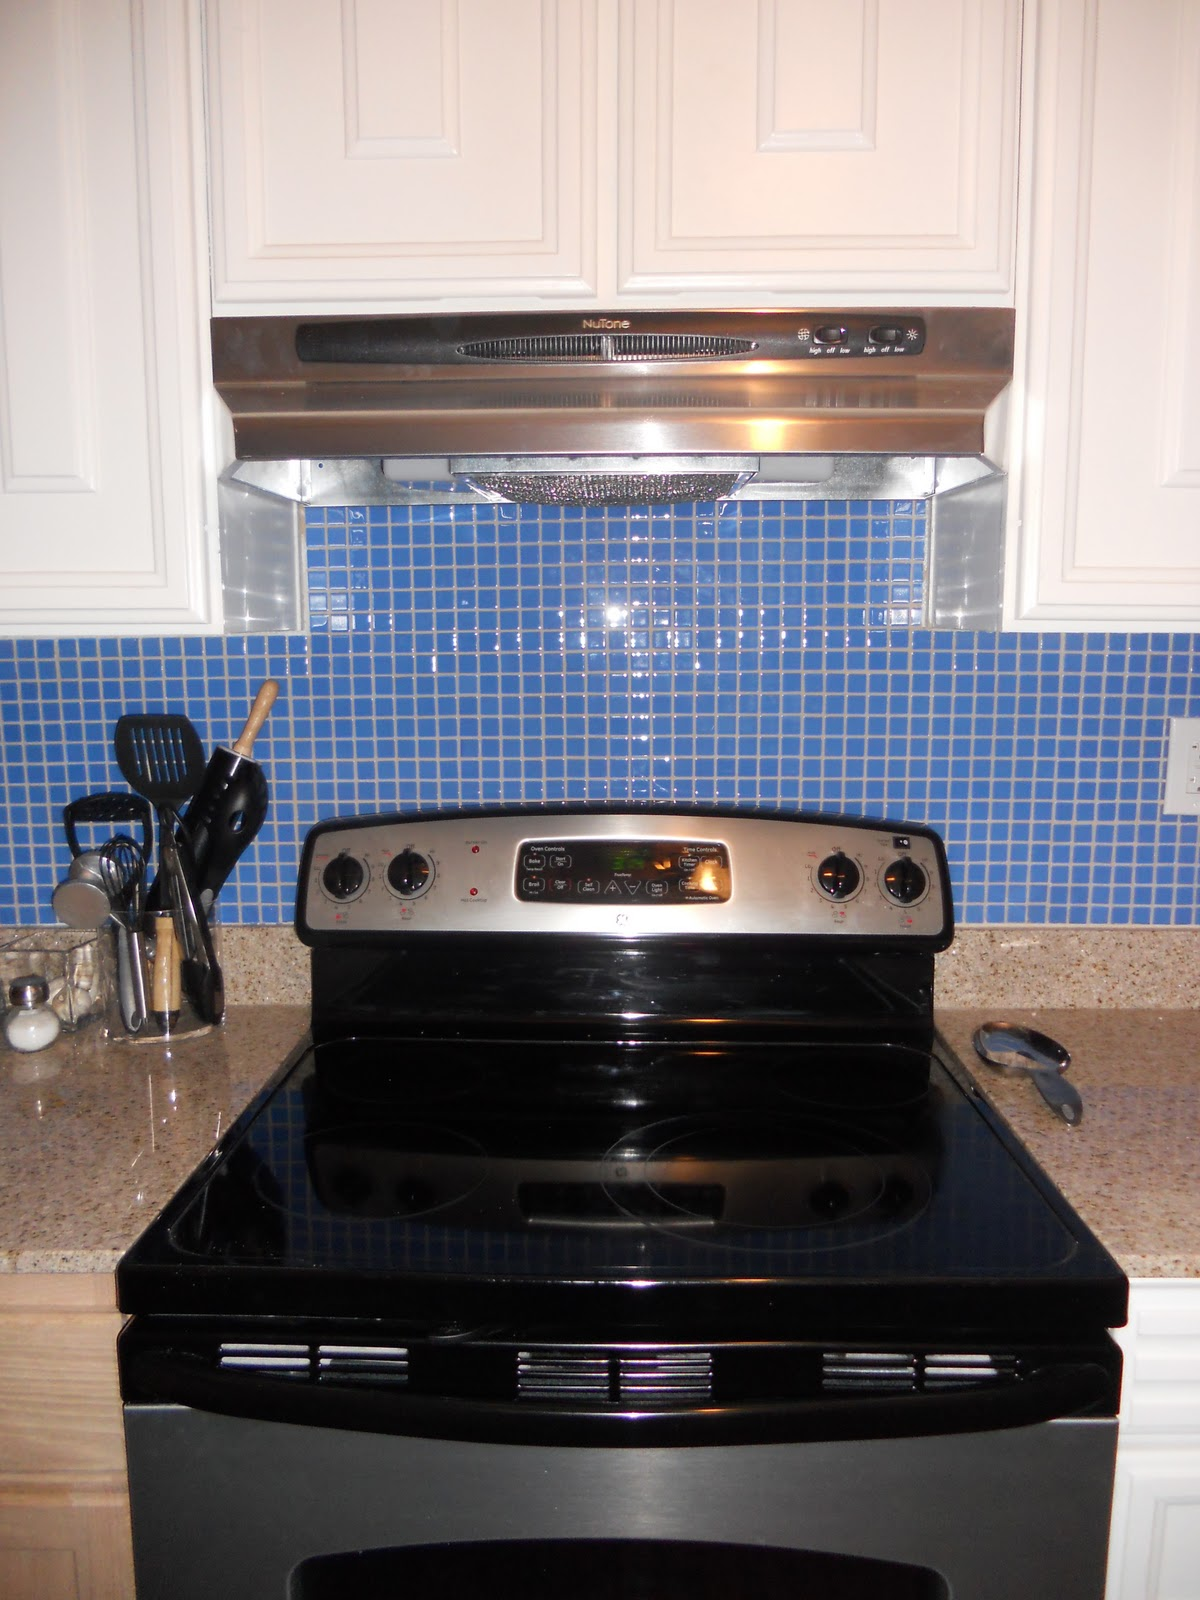 Countertop Microwave Vs Over The Range : range microwave ovens compare prices on microhood over the range ...